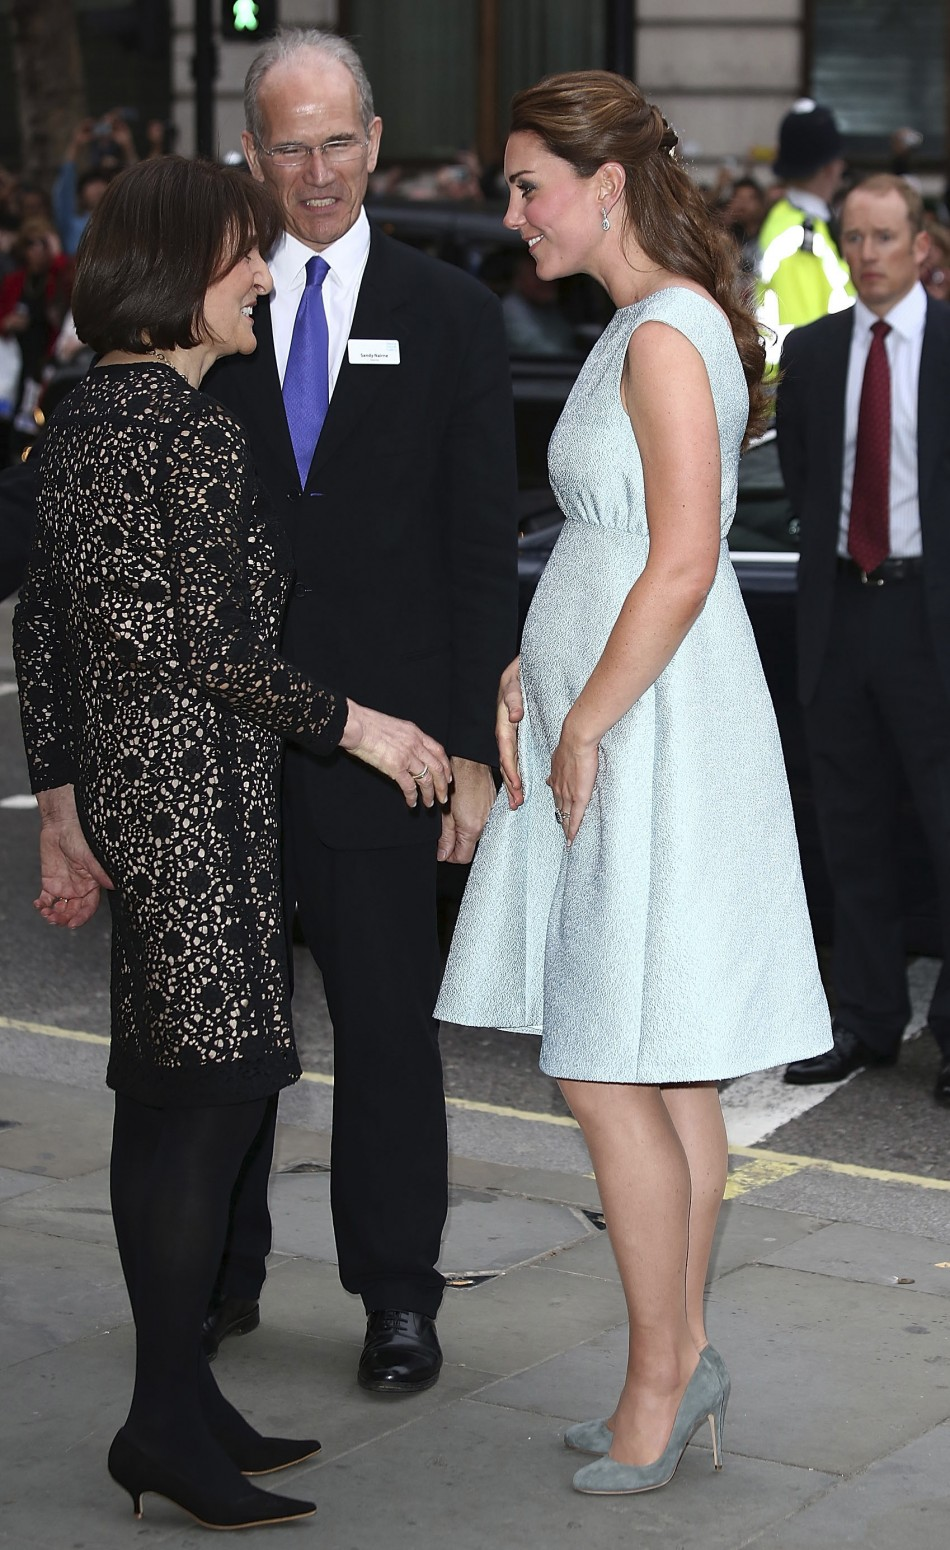 Britain's Catherine, Duchess of Cambridge is met by National Portrait Gallery director Sandy Nairne and Art Room charity founder Juli Beattie (L) before a reception at the National Portrait Gallery in London April 24, 2013.